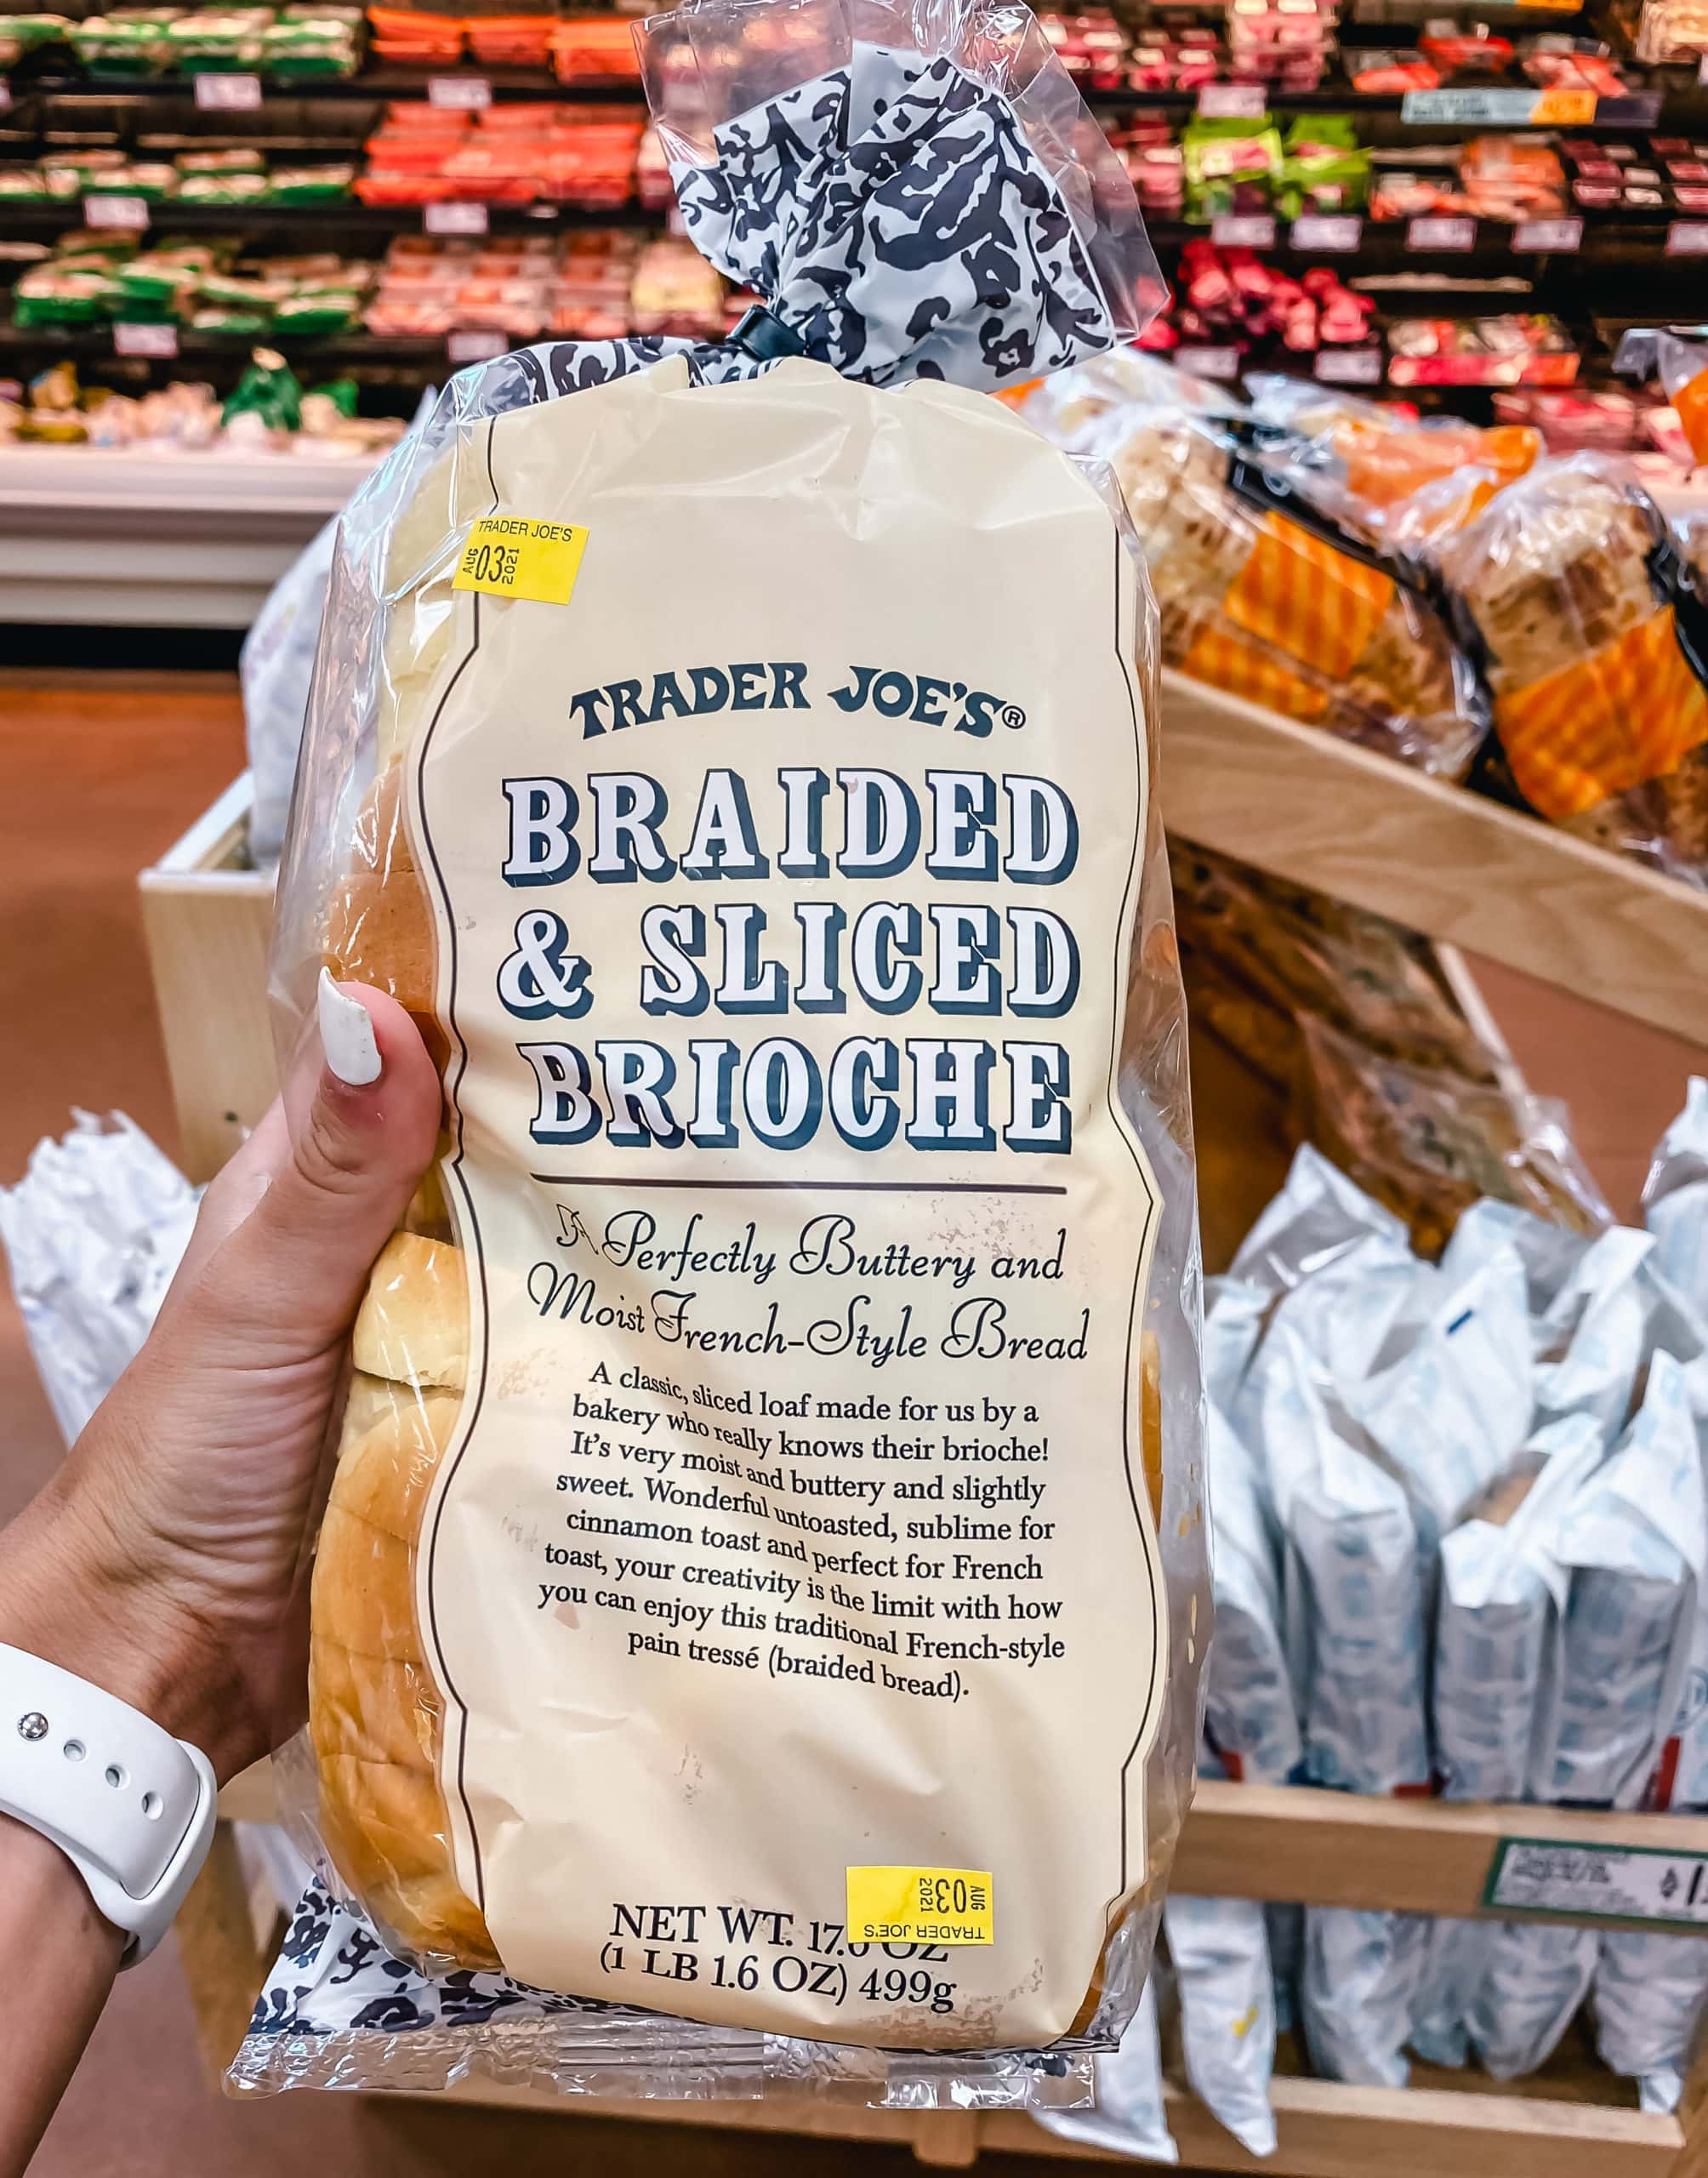 Braided and Sliced Brioche from Trader Joe's. The Best Foods to Buy from Trader Joe's.